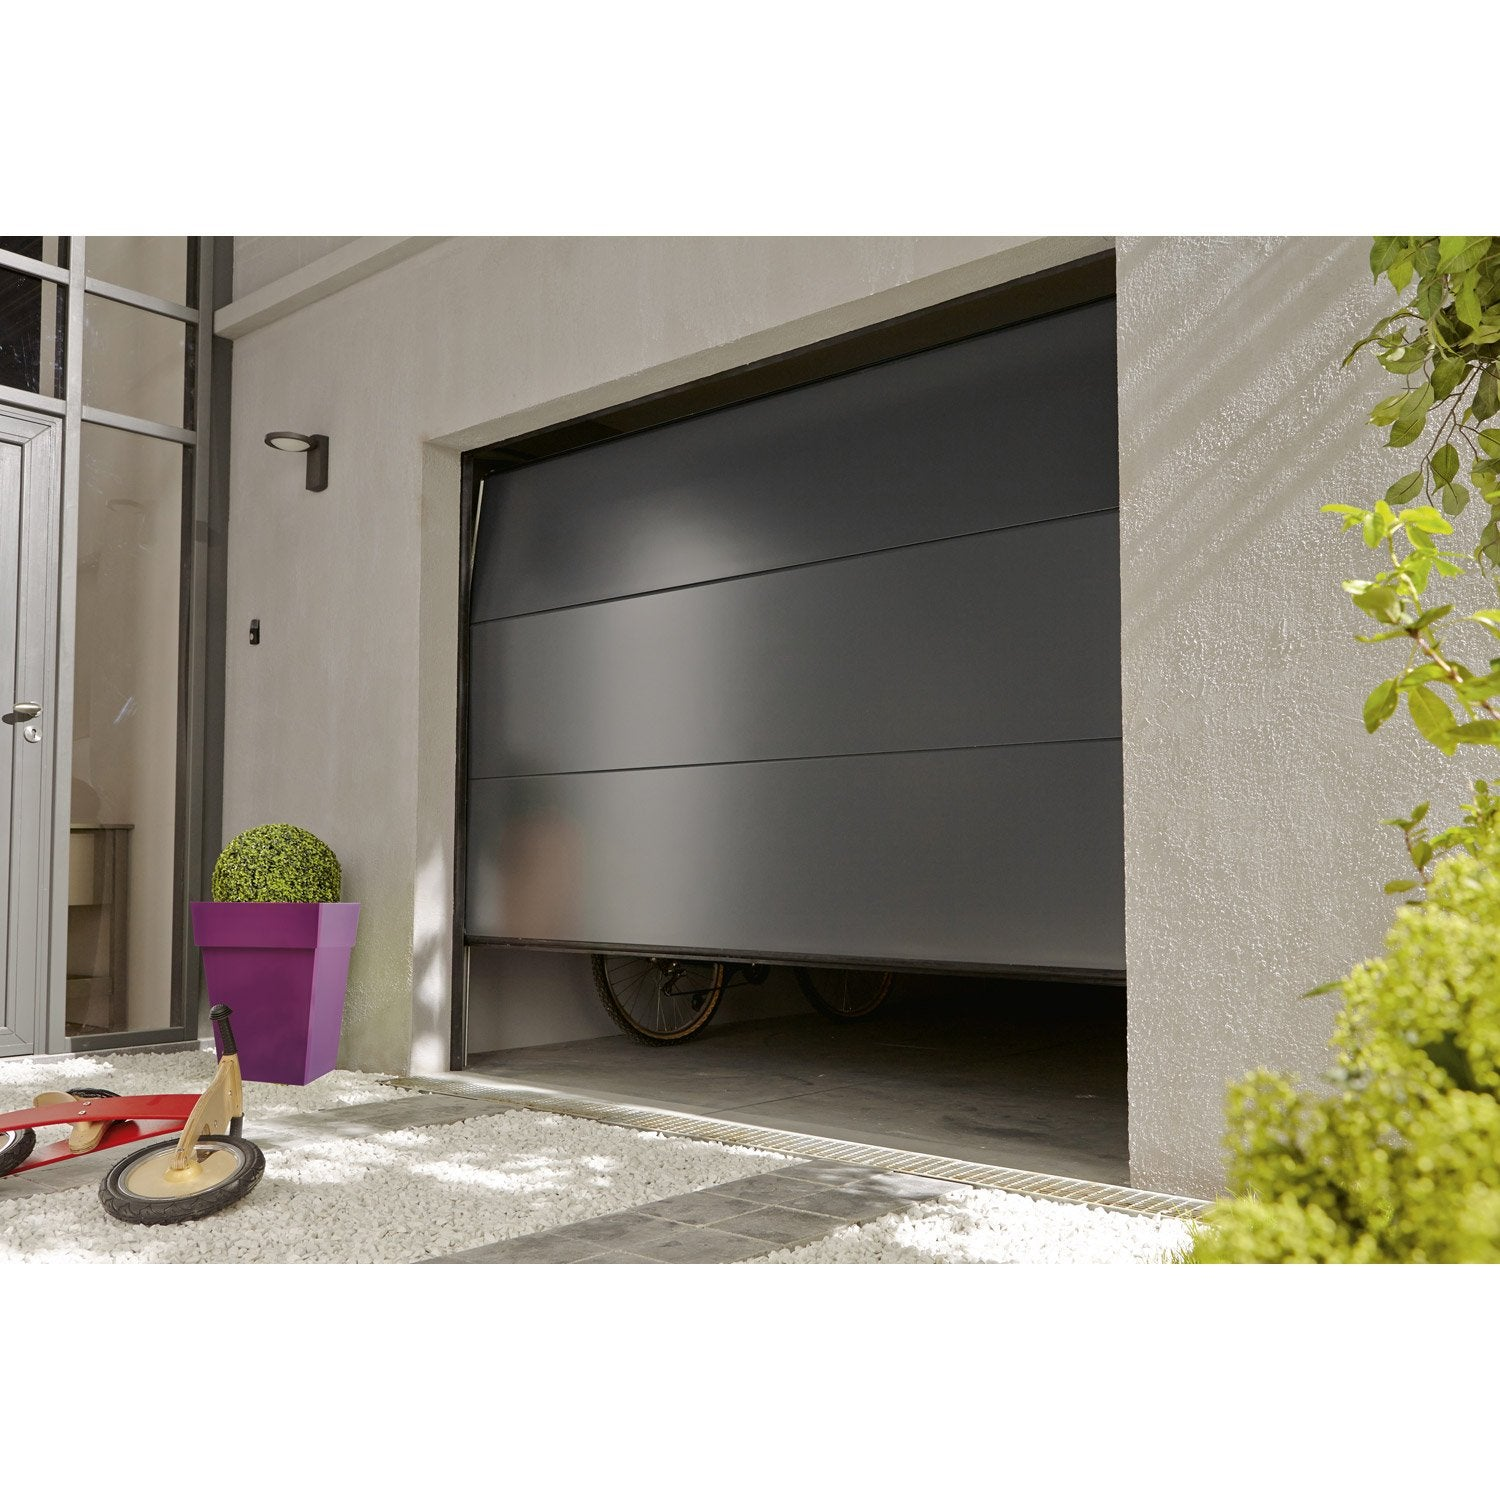 Porte de garage sectionelle palma acier gris anthracite for Porte de garage luxembourg prix